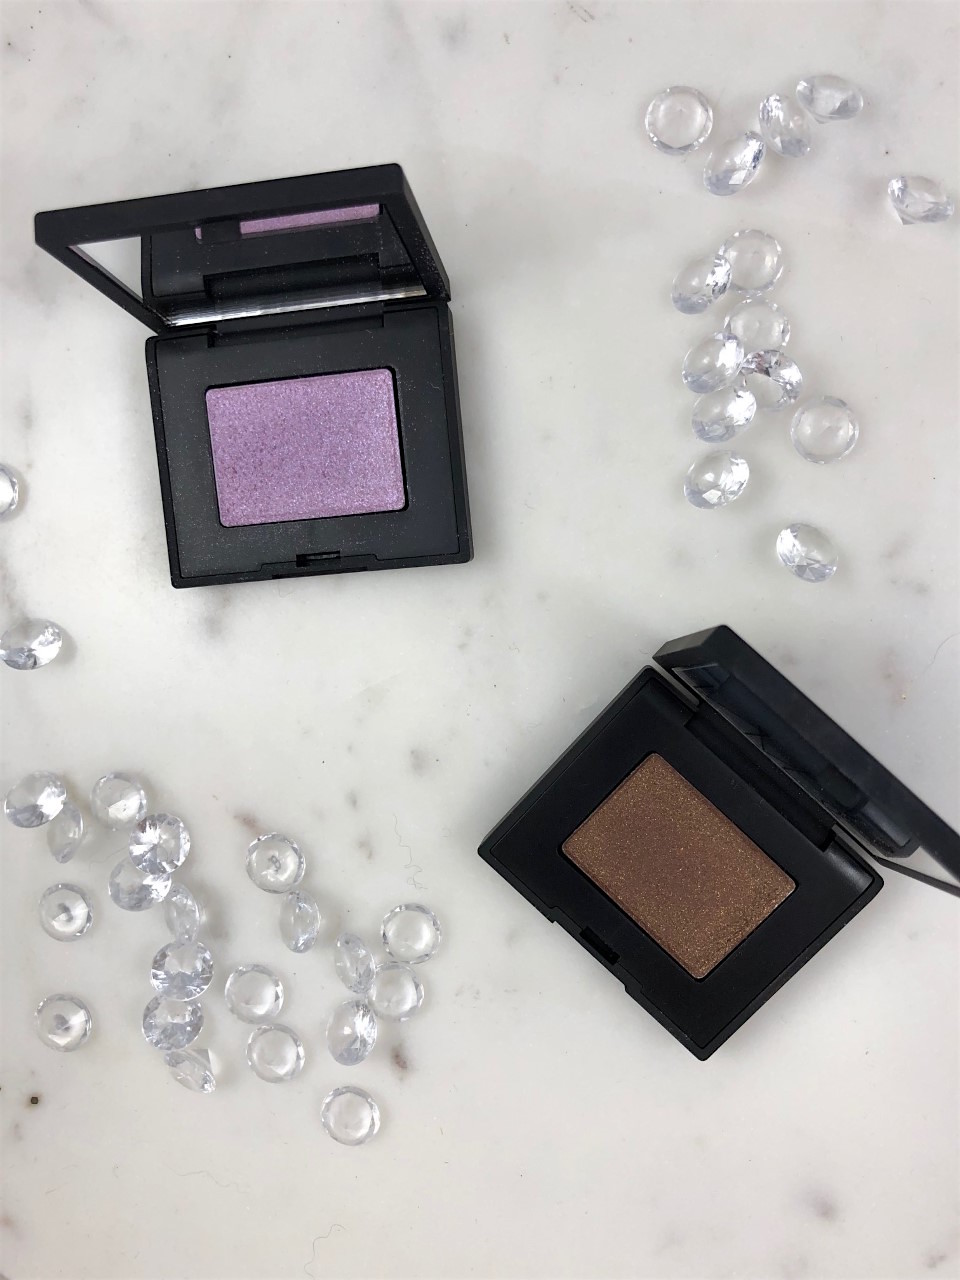 NARS Eye Shadow Collection: A quick review